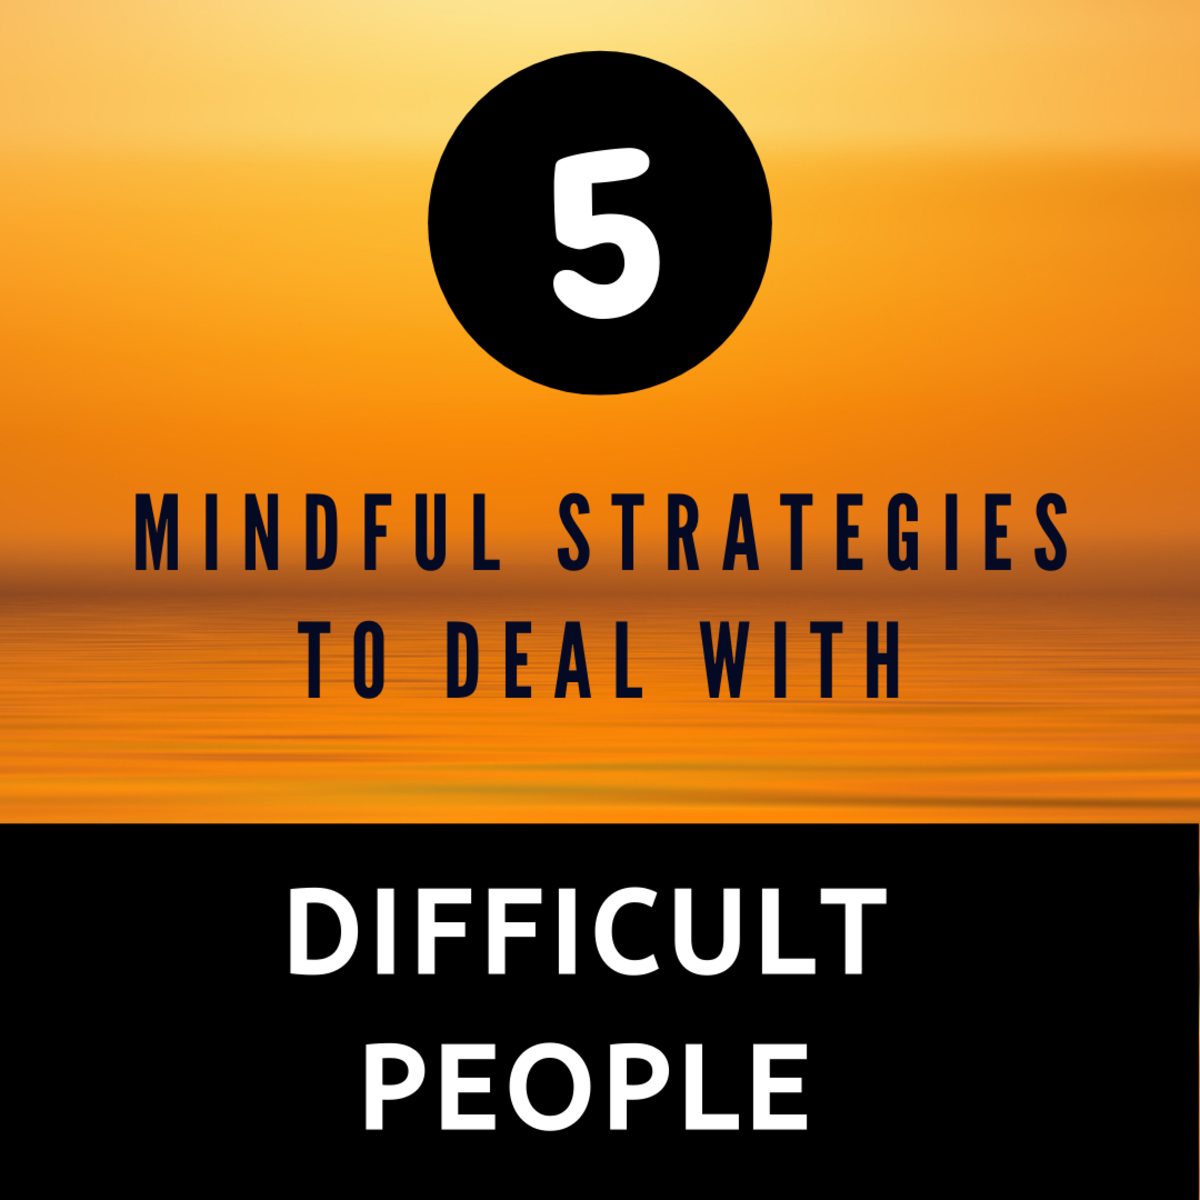 How to deal with difficult people?